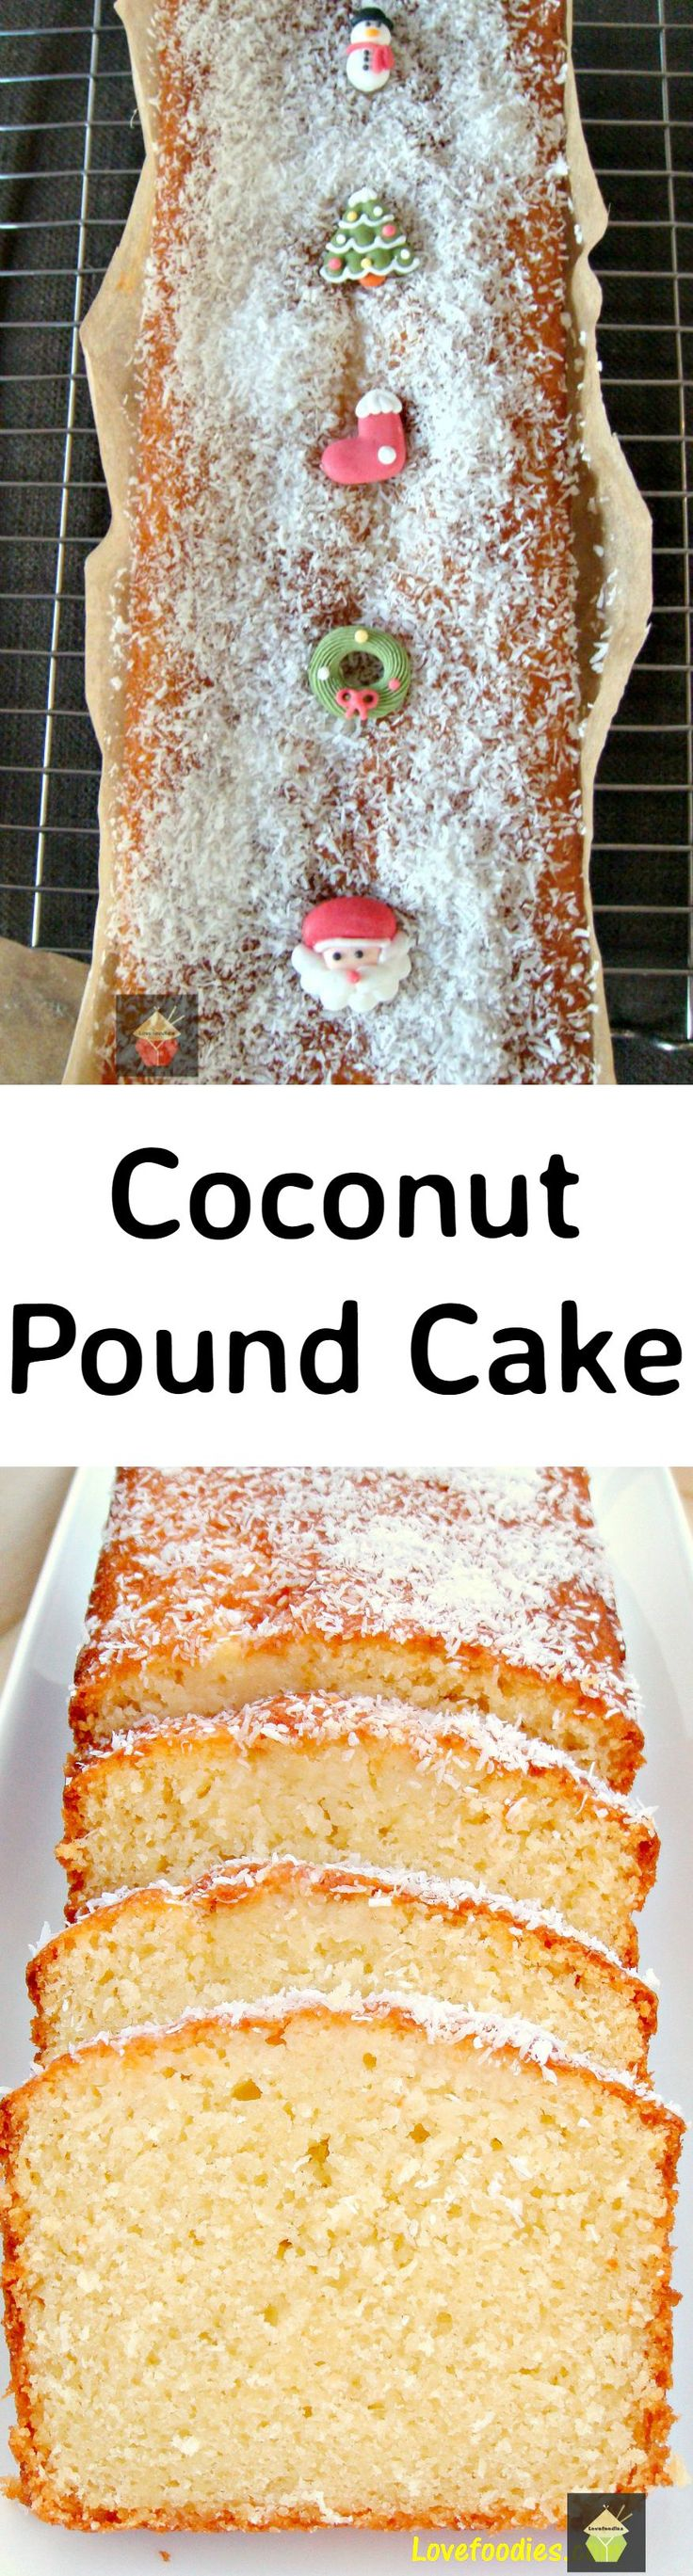 Moist Coconut Pound Loaf Cake. Light, soft, and oh sooooo delicious! Easy to make in to a Christmas cake too!